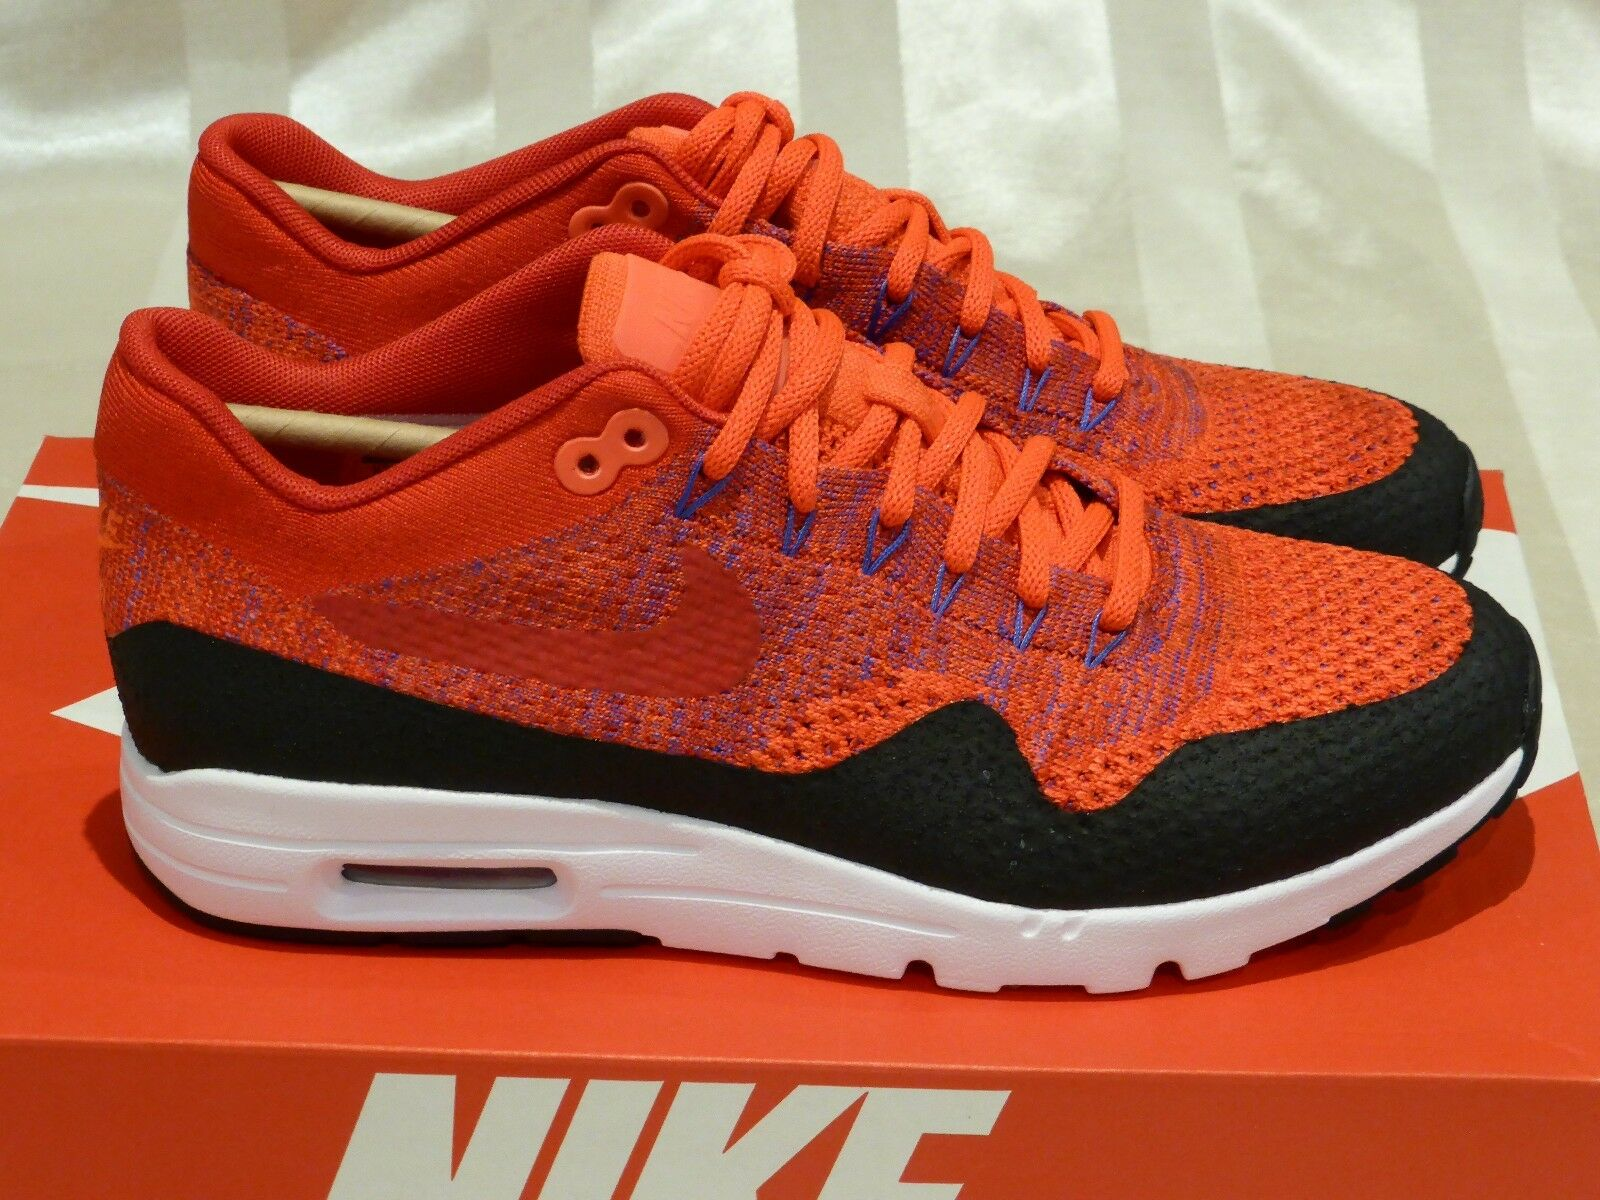 Nike Air Max 1 Ultra Flyknit Flyknit Flyknit 'University rosso' donna (Dimensione US9.5)New boost retro 080eb7